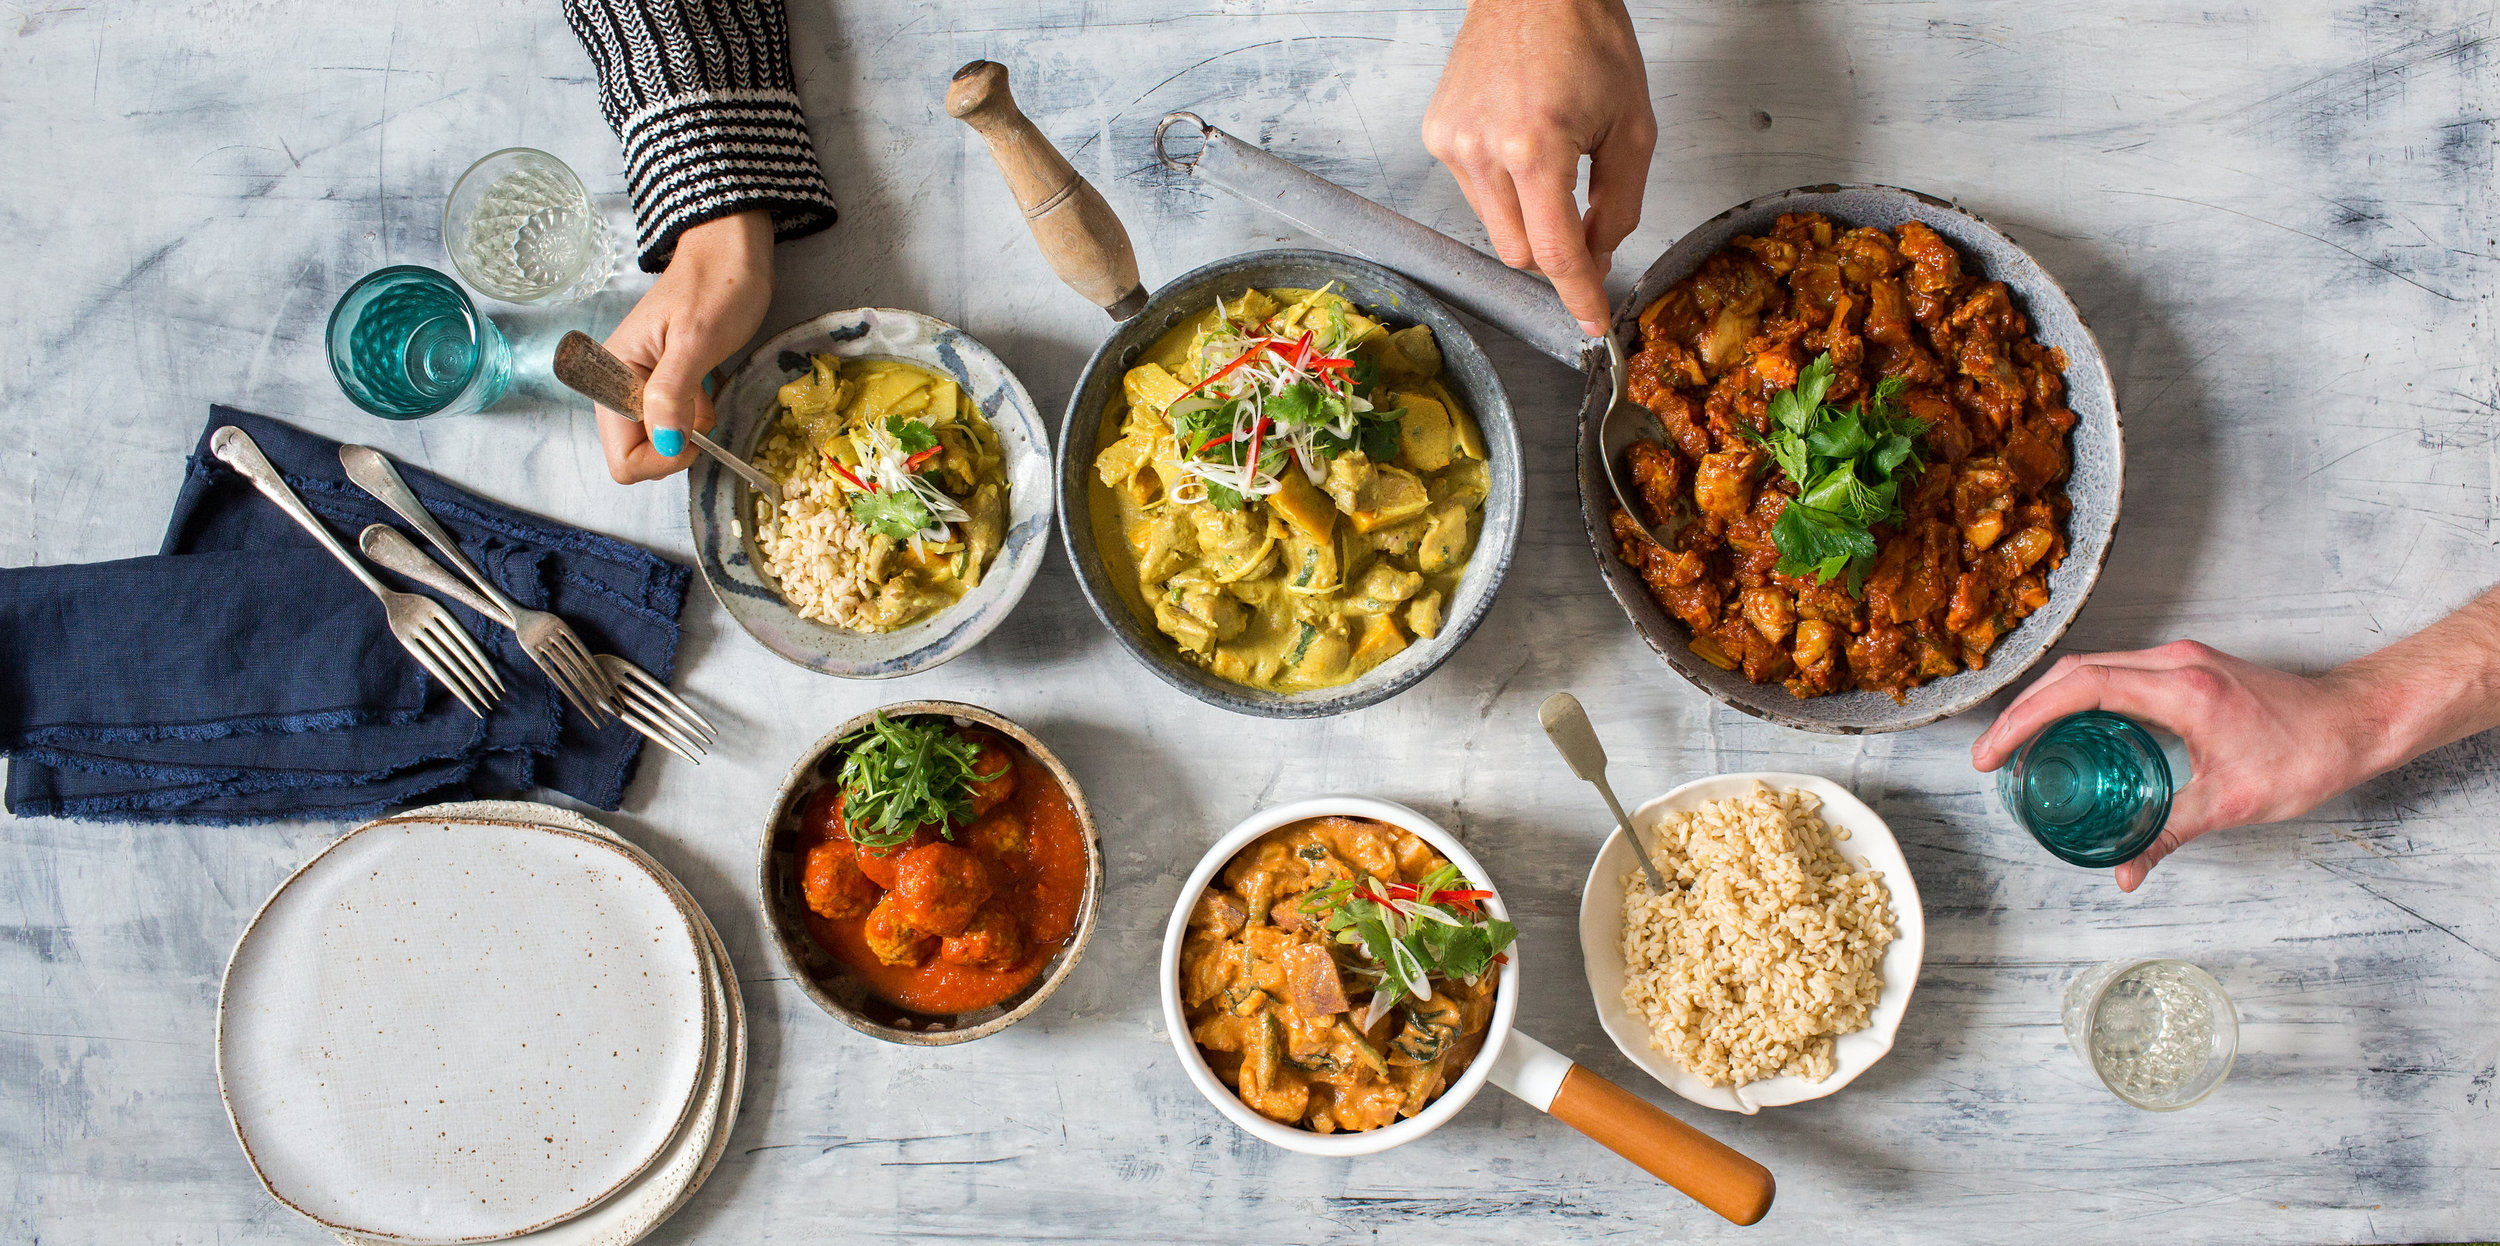 Mixed Curries Foxes-134.jpg